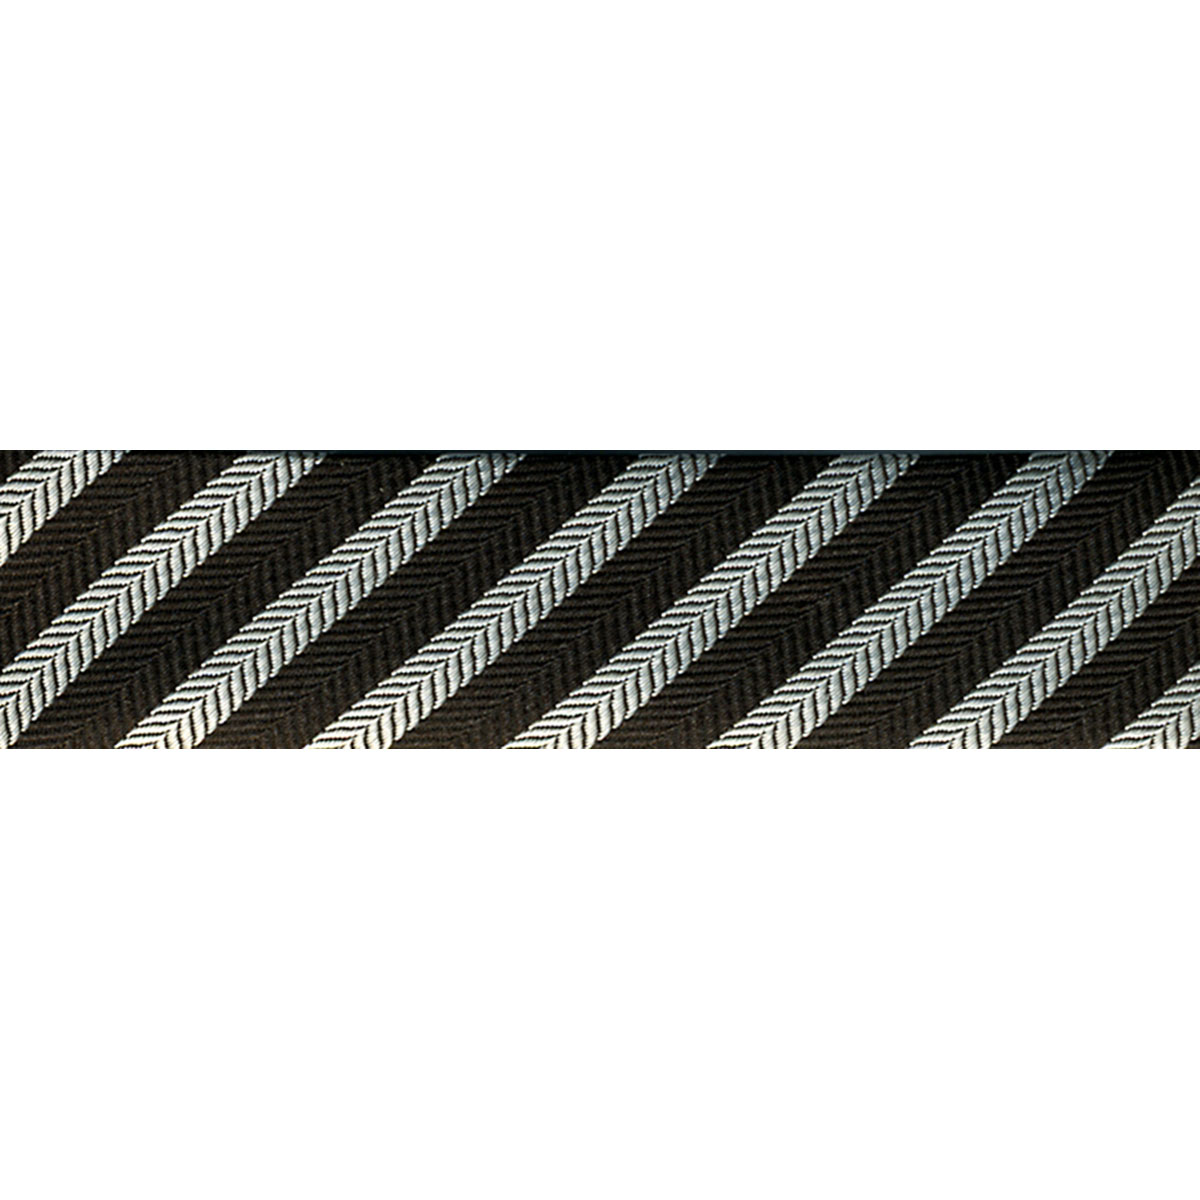 Novelty Fashion Bias 20mm X 22 Yards-Black/Silver Stripe